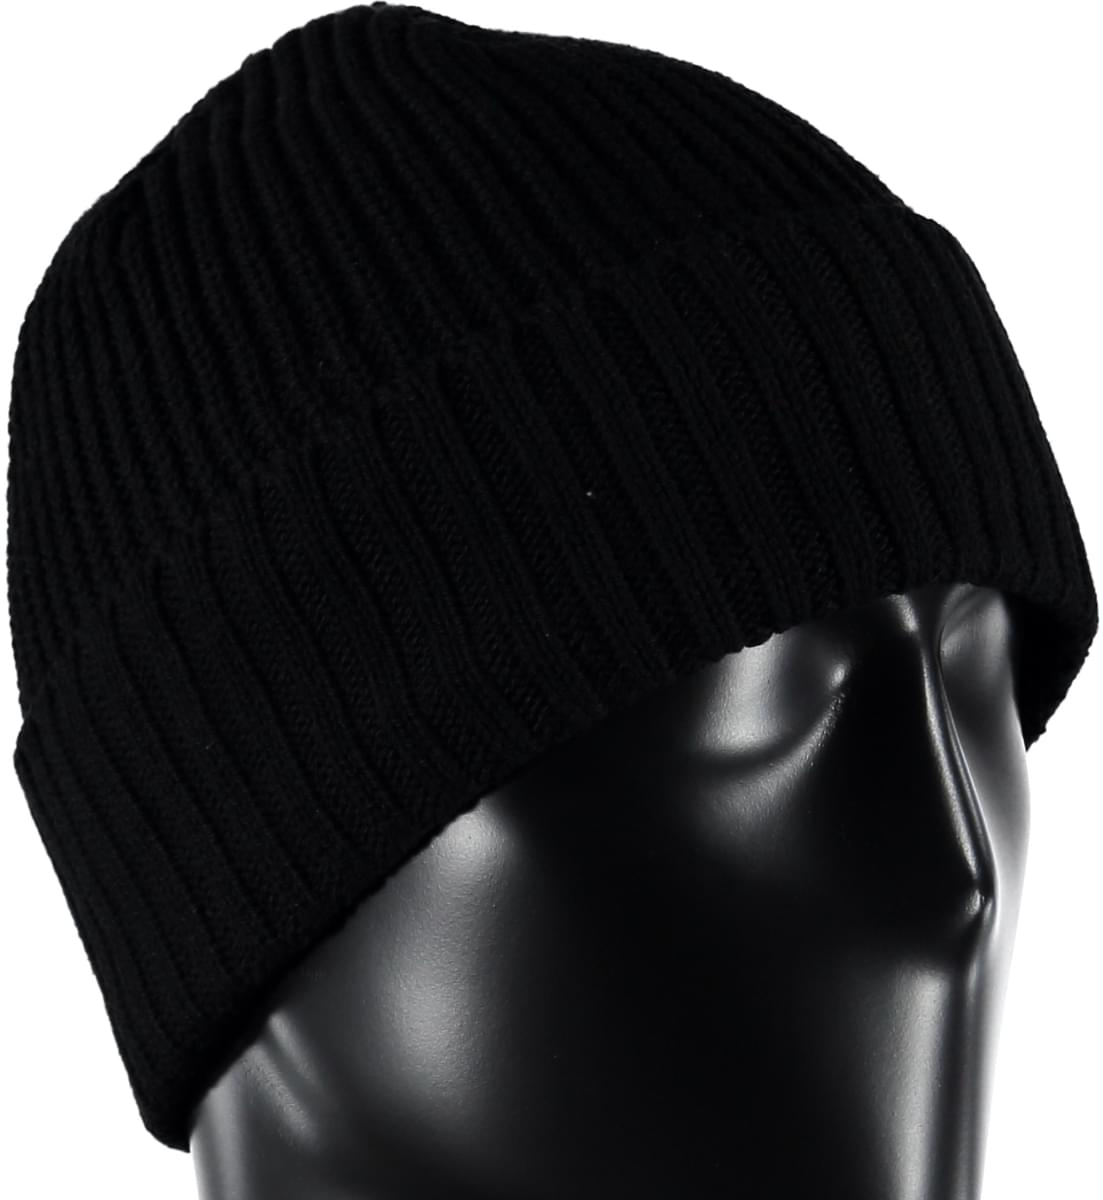 Spyder Men's Lounge Hat - blk uni